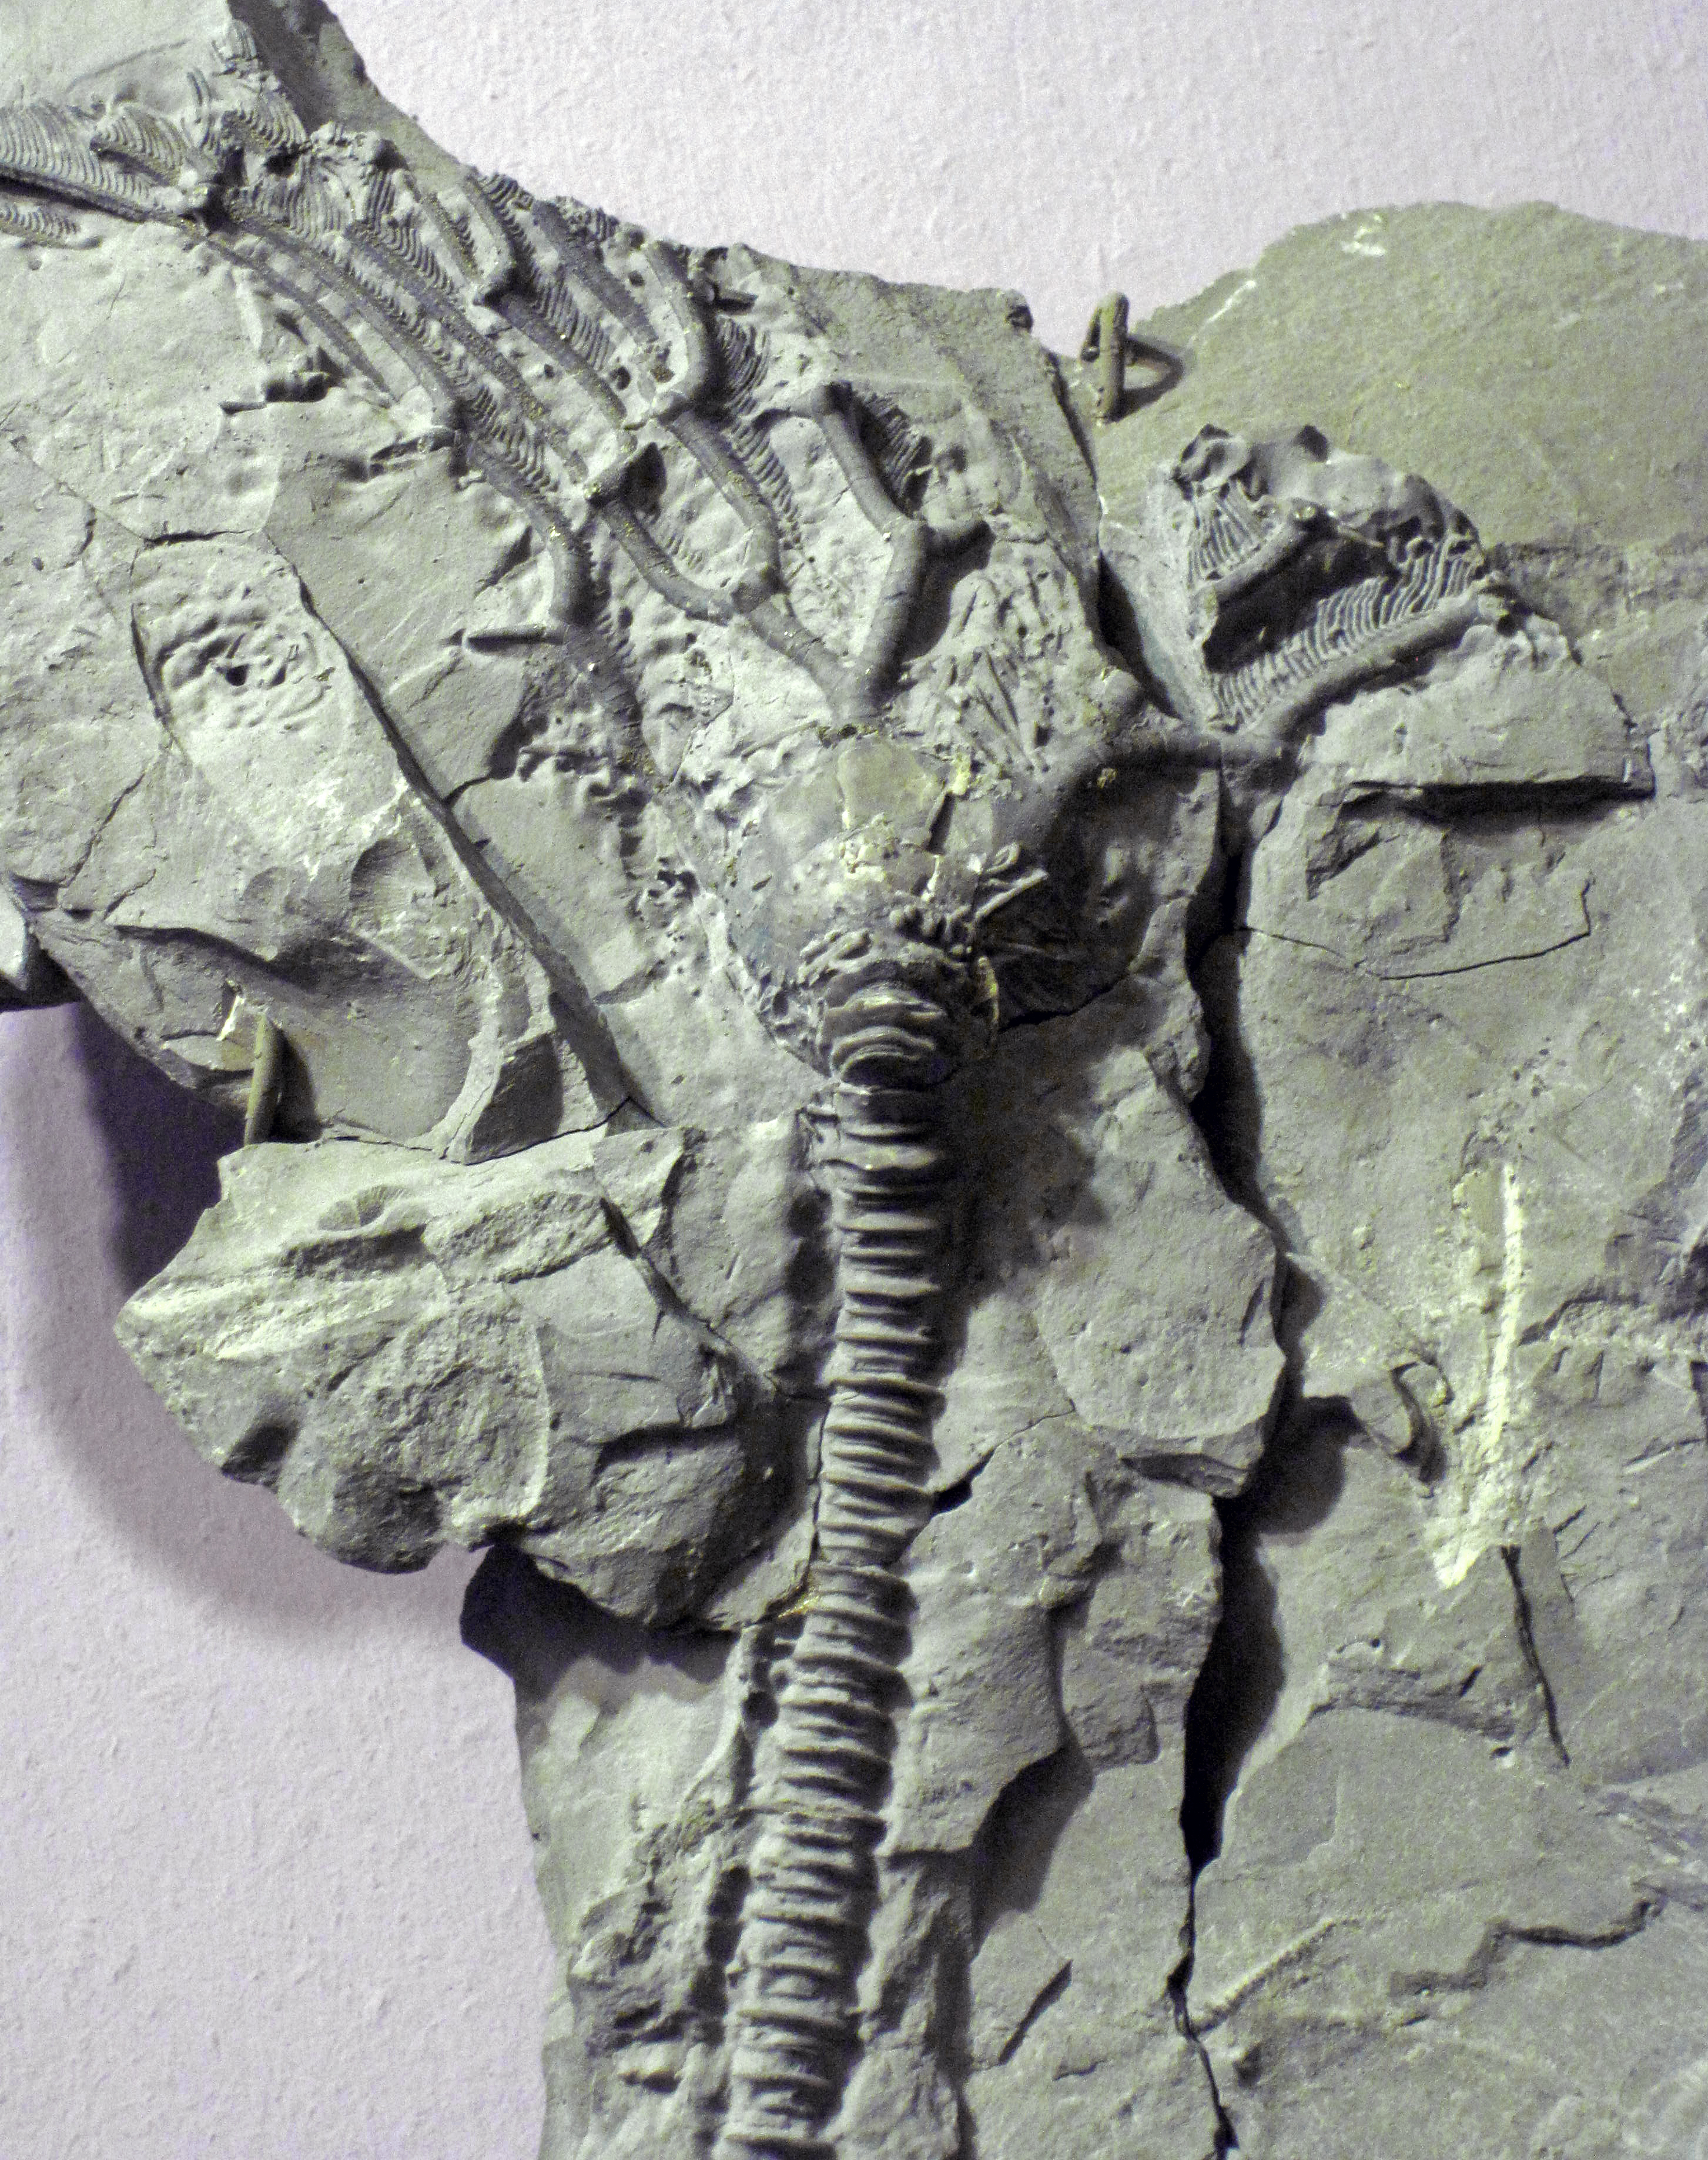 stick, or stem, is composed of numerous stacked columnals, like small poker chips. Stems and individual columnals are the most commonly encountered crinoid